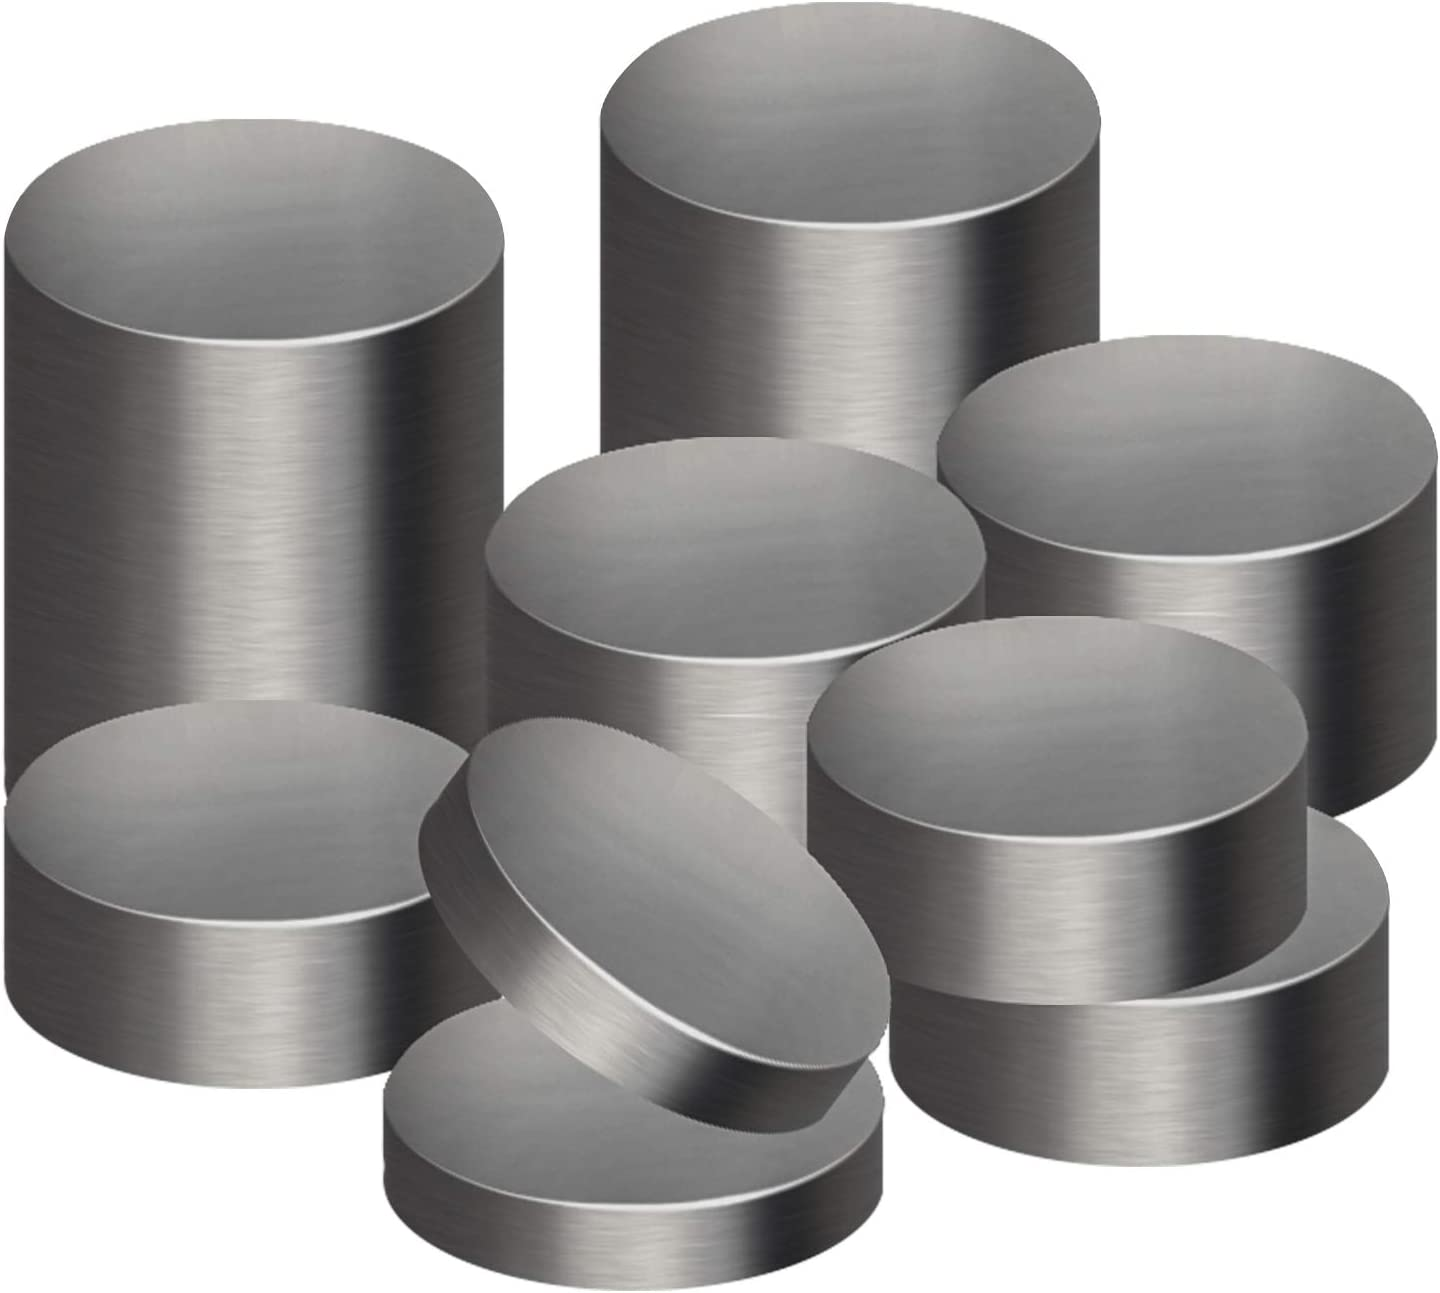 Tungsten Weights Cylinders Weights Tungsten Weights Car Weights to Optimize Your Car for Speed 3 Ounce